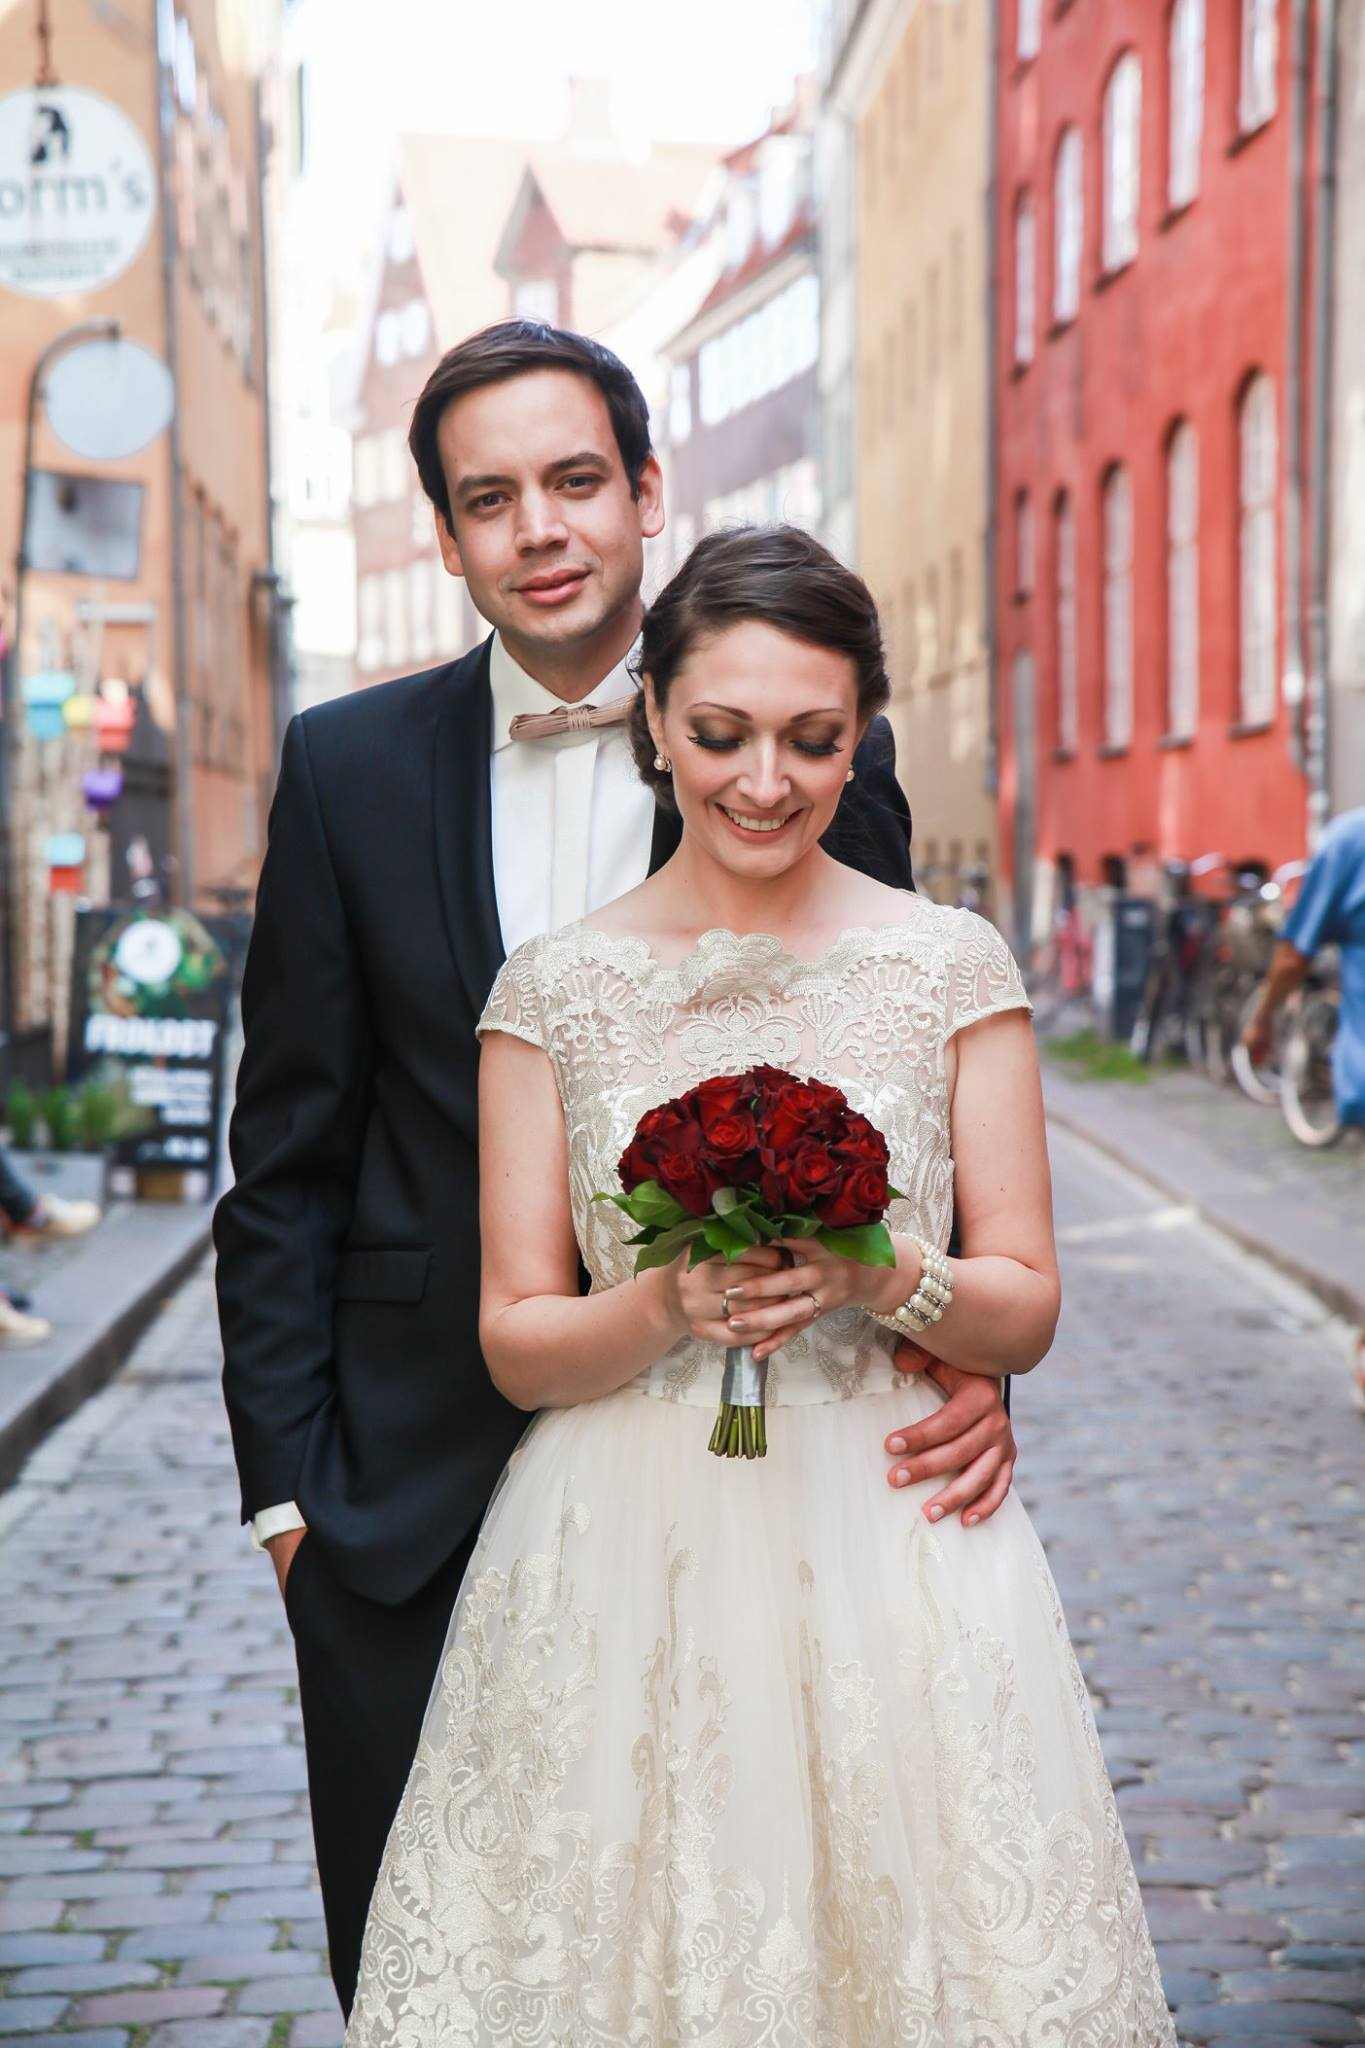 Married couple in copenhagens streets